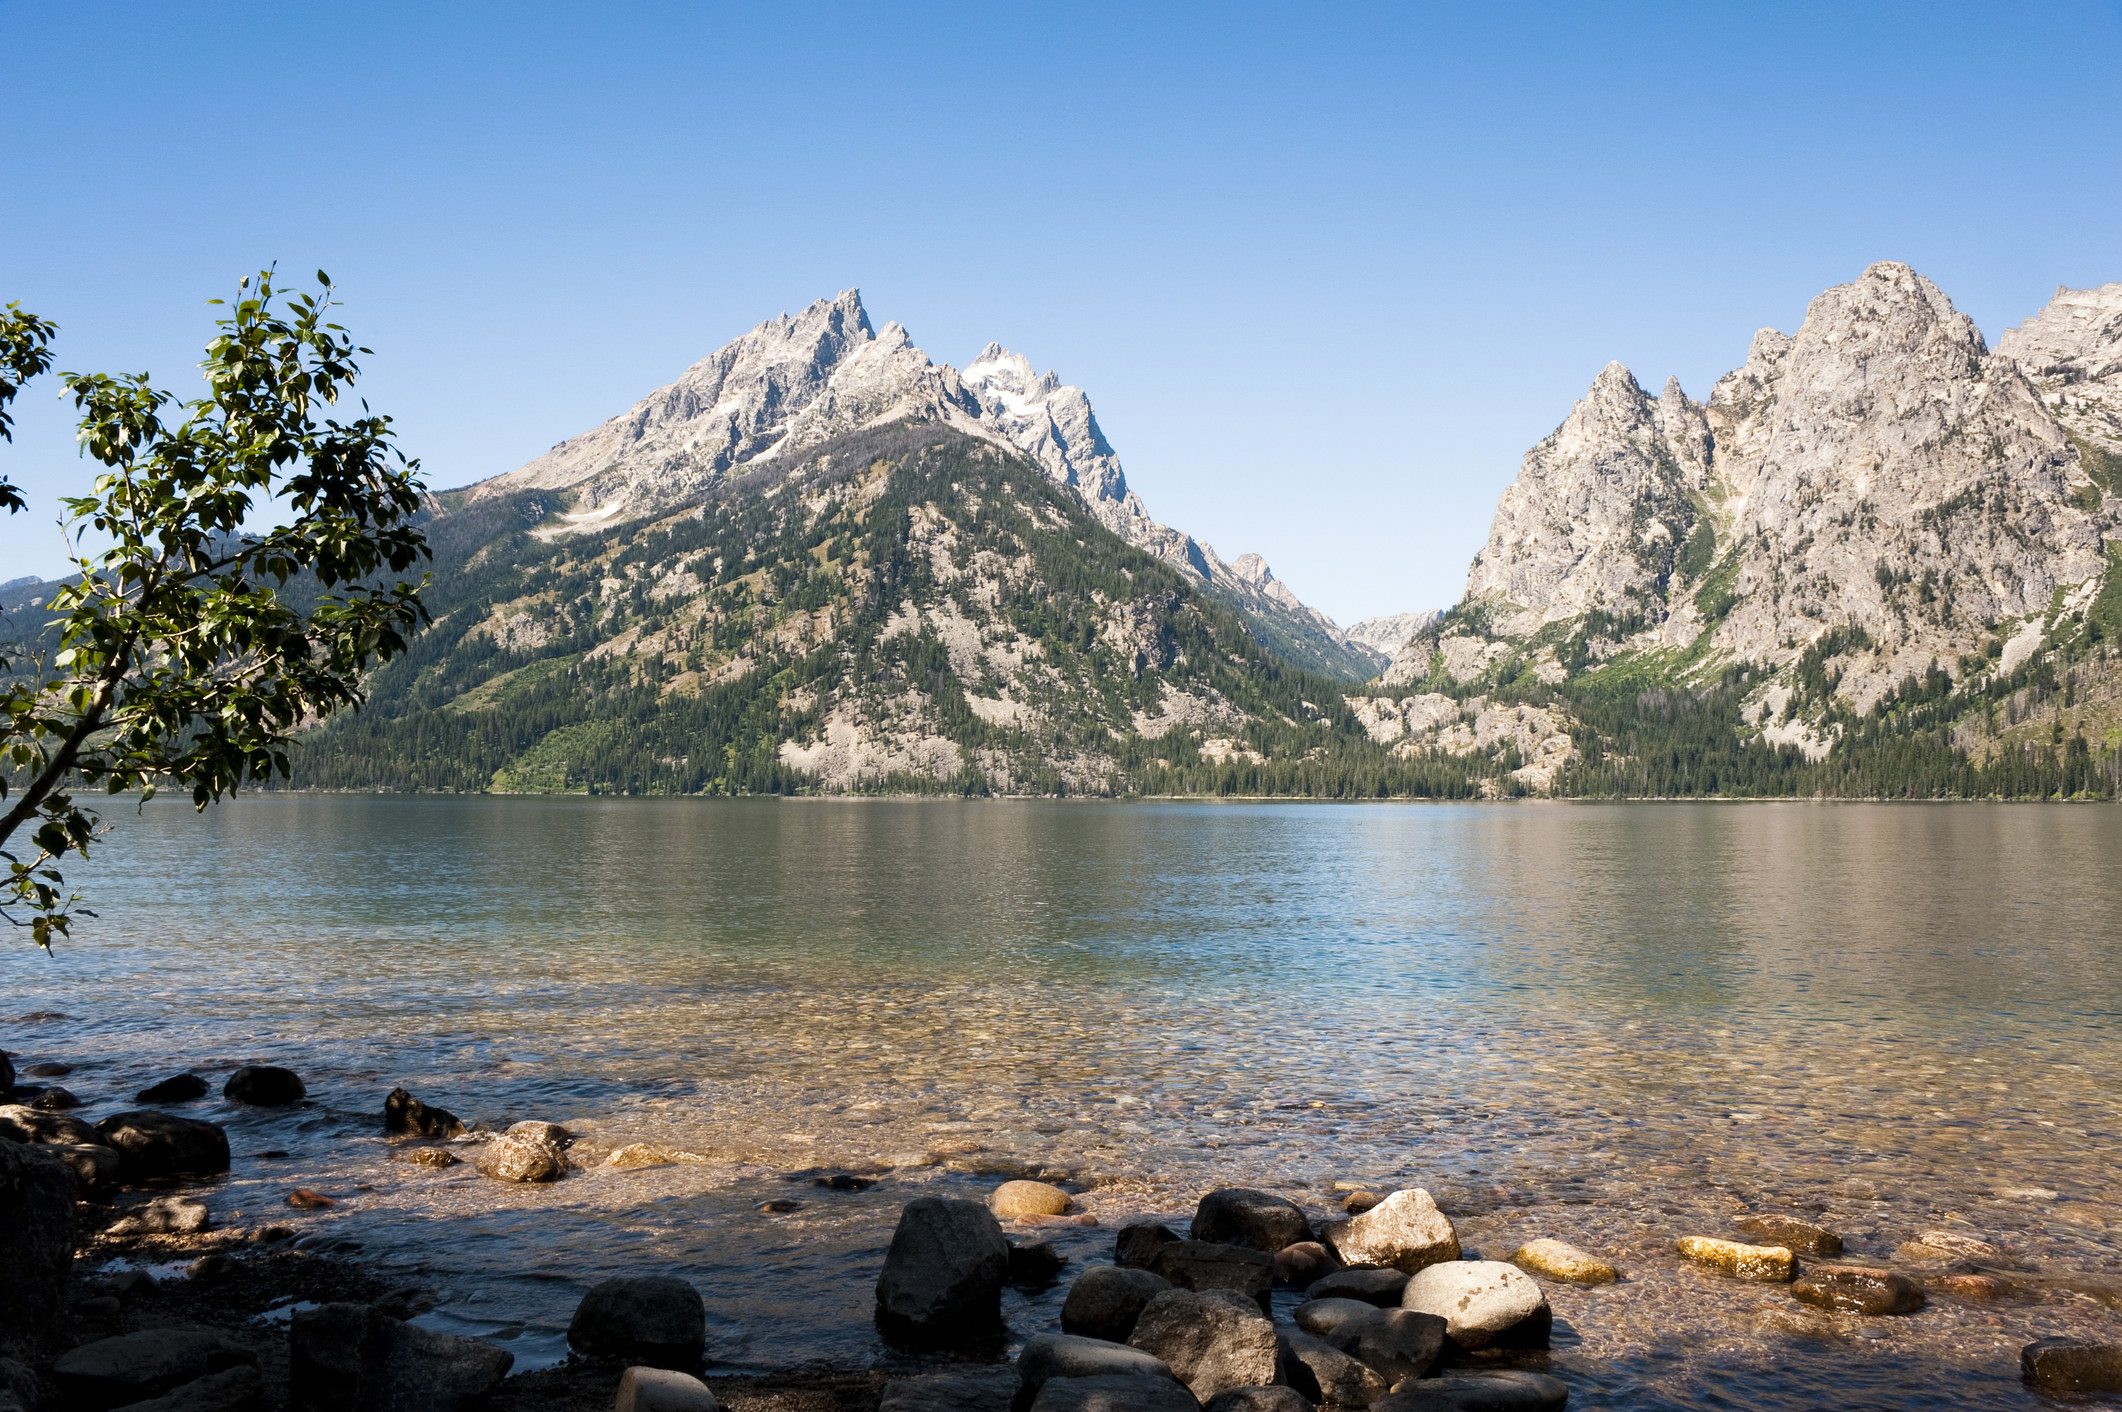 White, pointy mountains of the Teton Range huddle against the clear waters of Jenny Lake